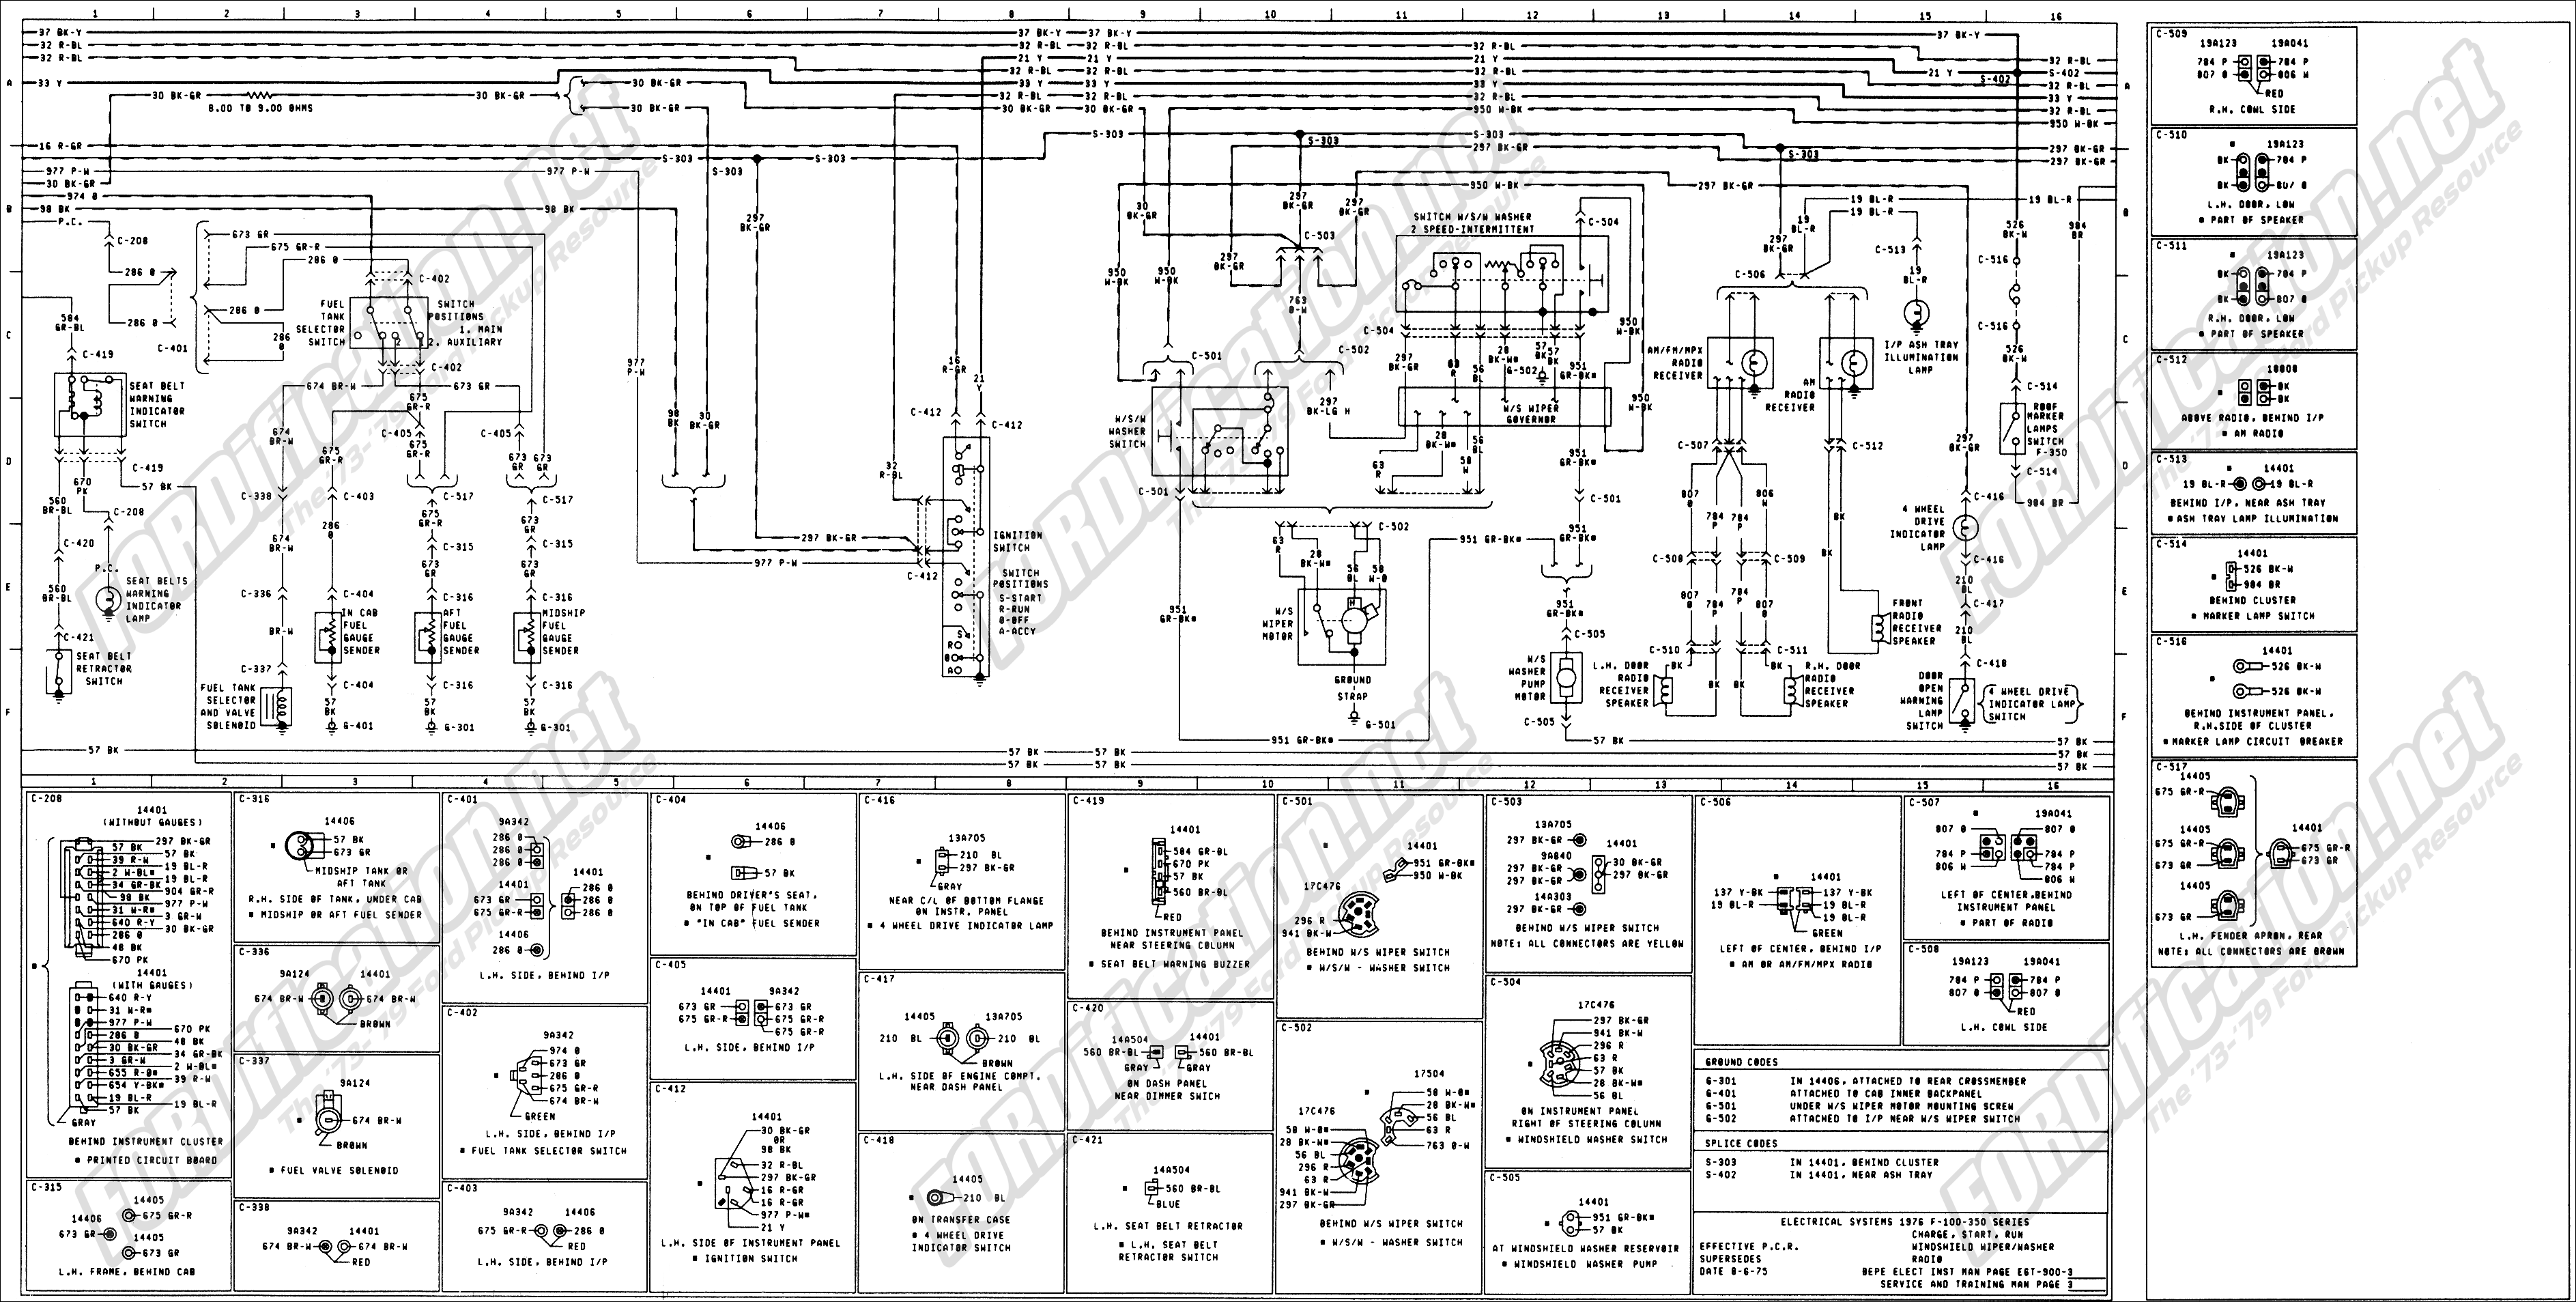 Electrical Schematic Fuse Box Diagram Search For Wiring Diagrams 60 Amp 1973 1979 Ford Truck Schematics Fordification Net Rh House Camper Hook Up